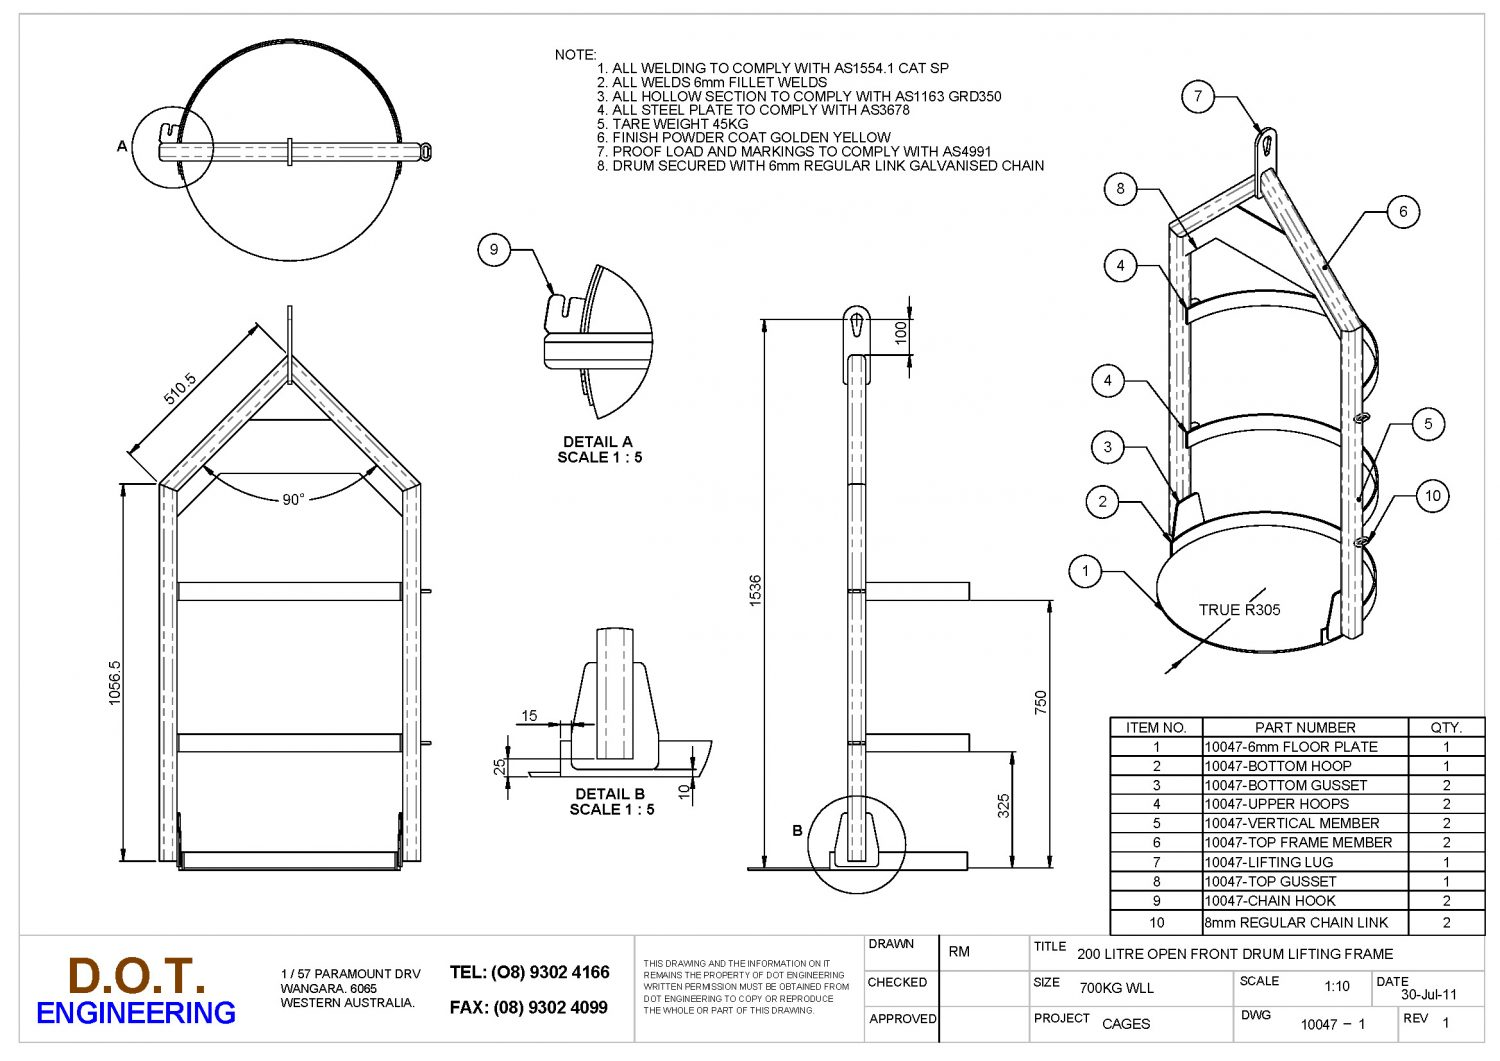 Single Drum Lifting Frame » D.O.T. Engineering